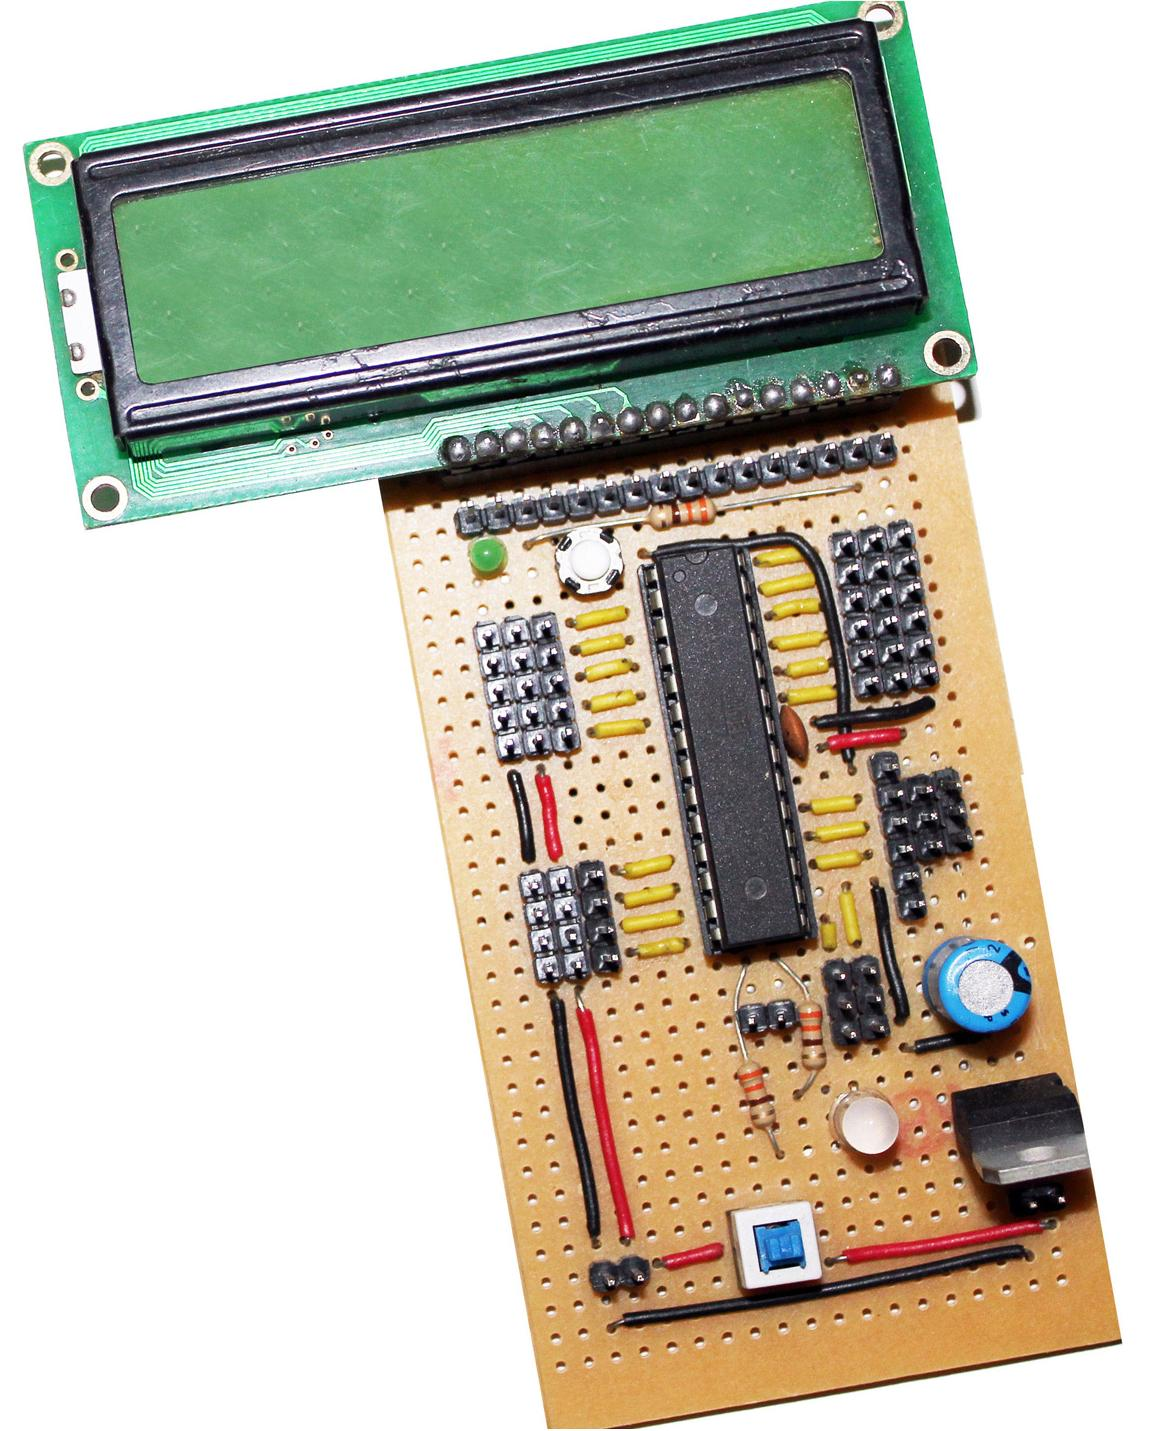 Avr Microcontrollers Wikiwand Atmel 8051 Flash Based Microcontroller Programmer Electronic